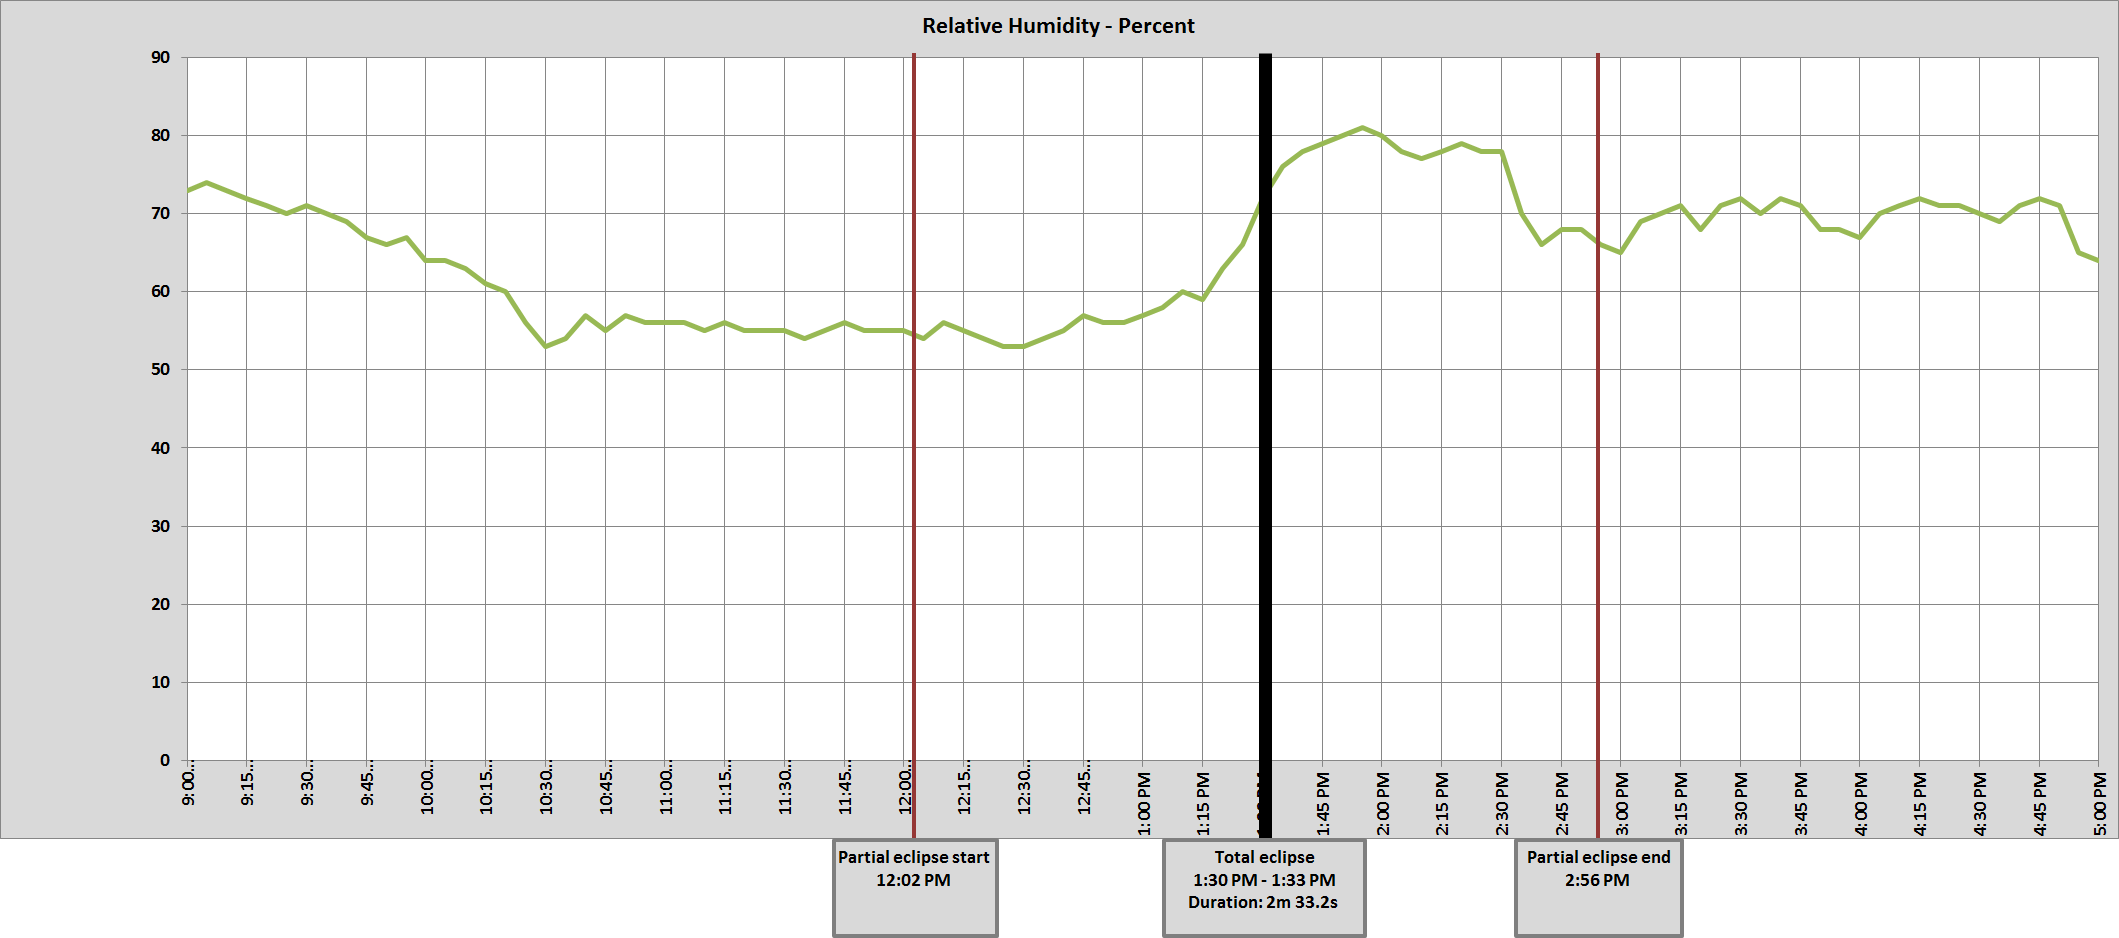 Graph of Crossville, TN relative humidity